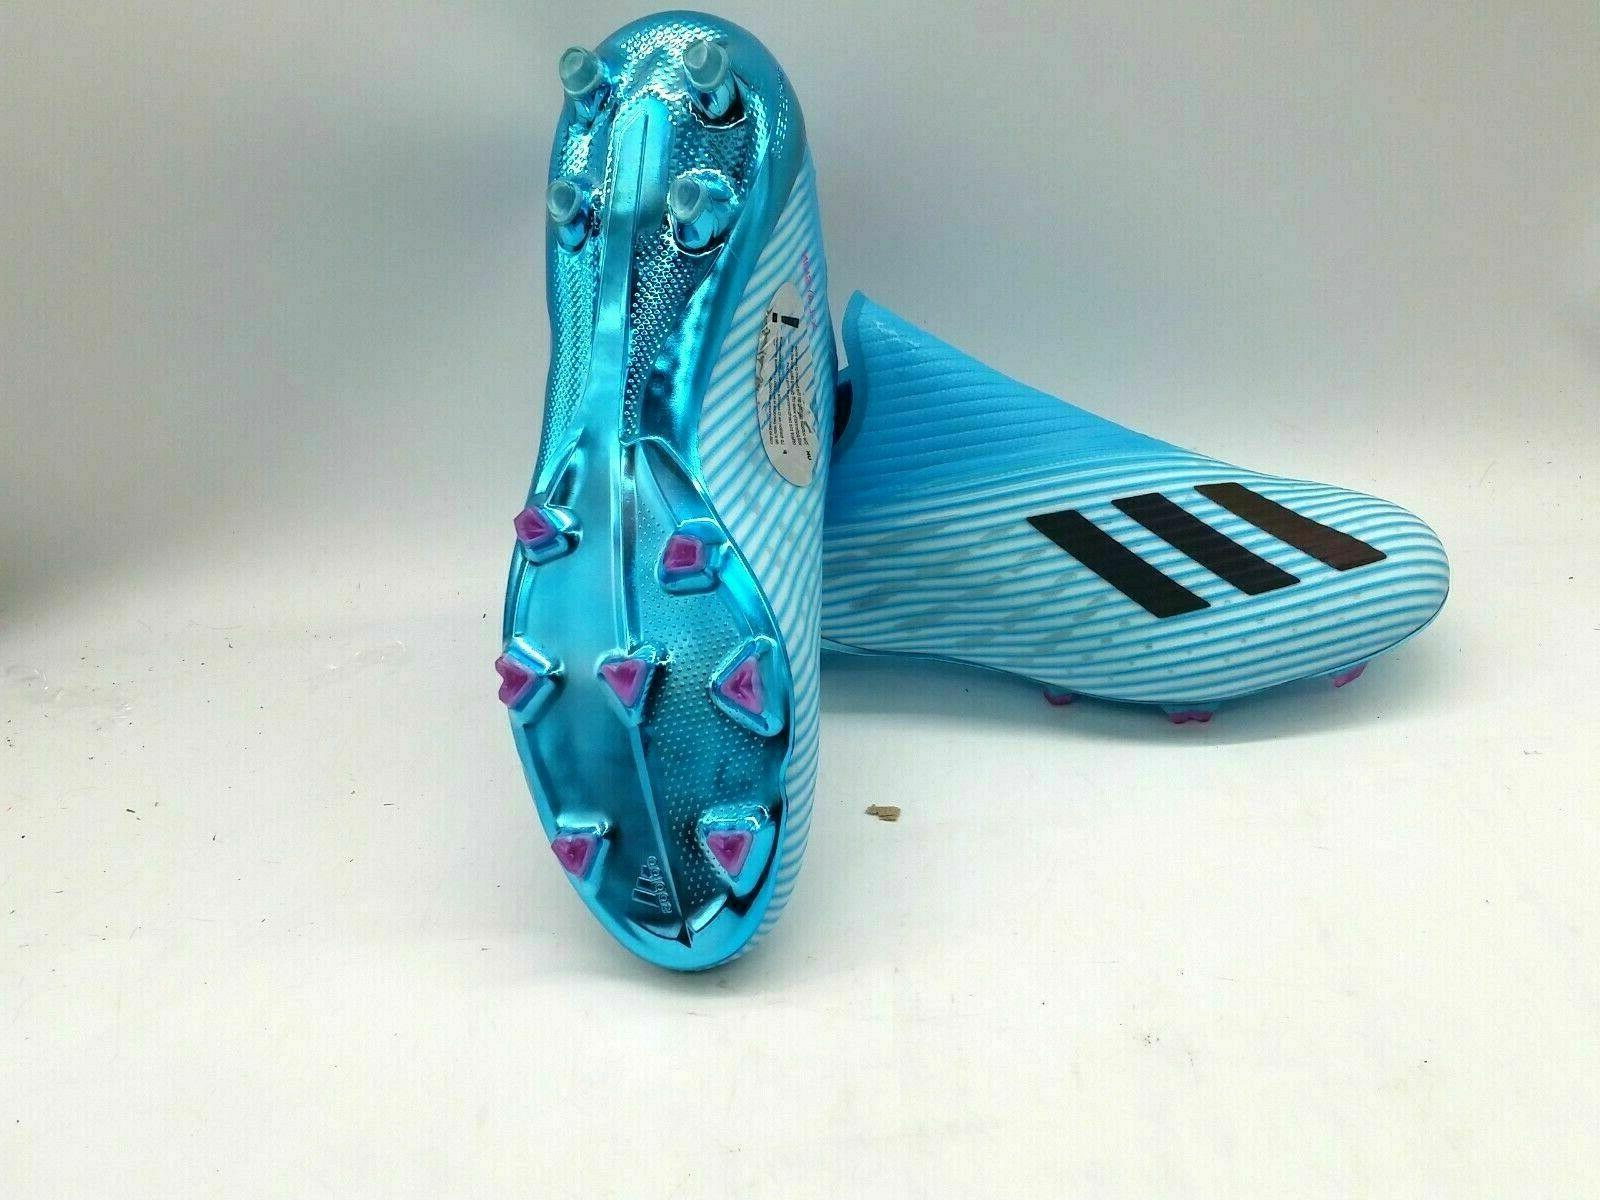 x 19 fg soccer cleats size 9